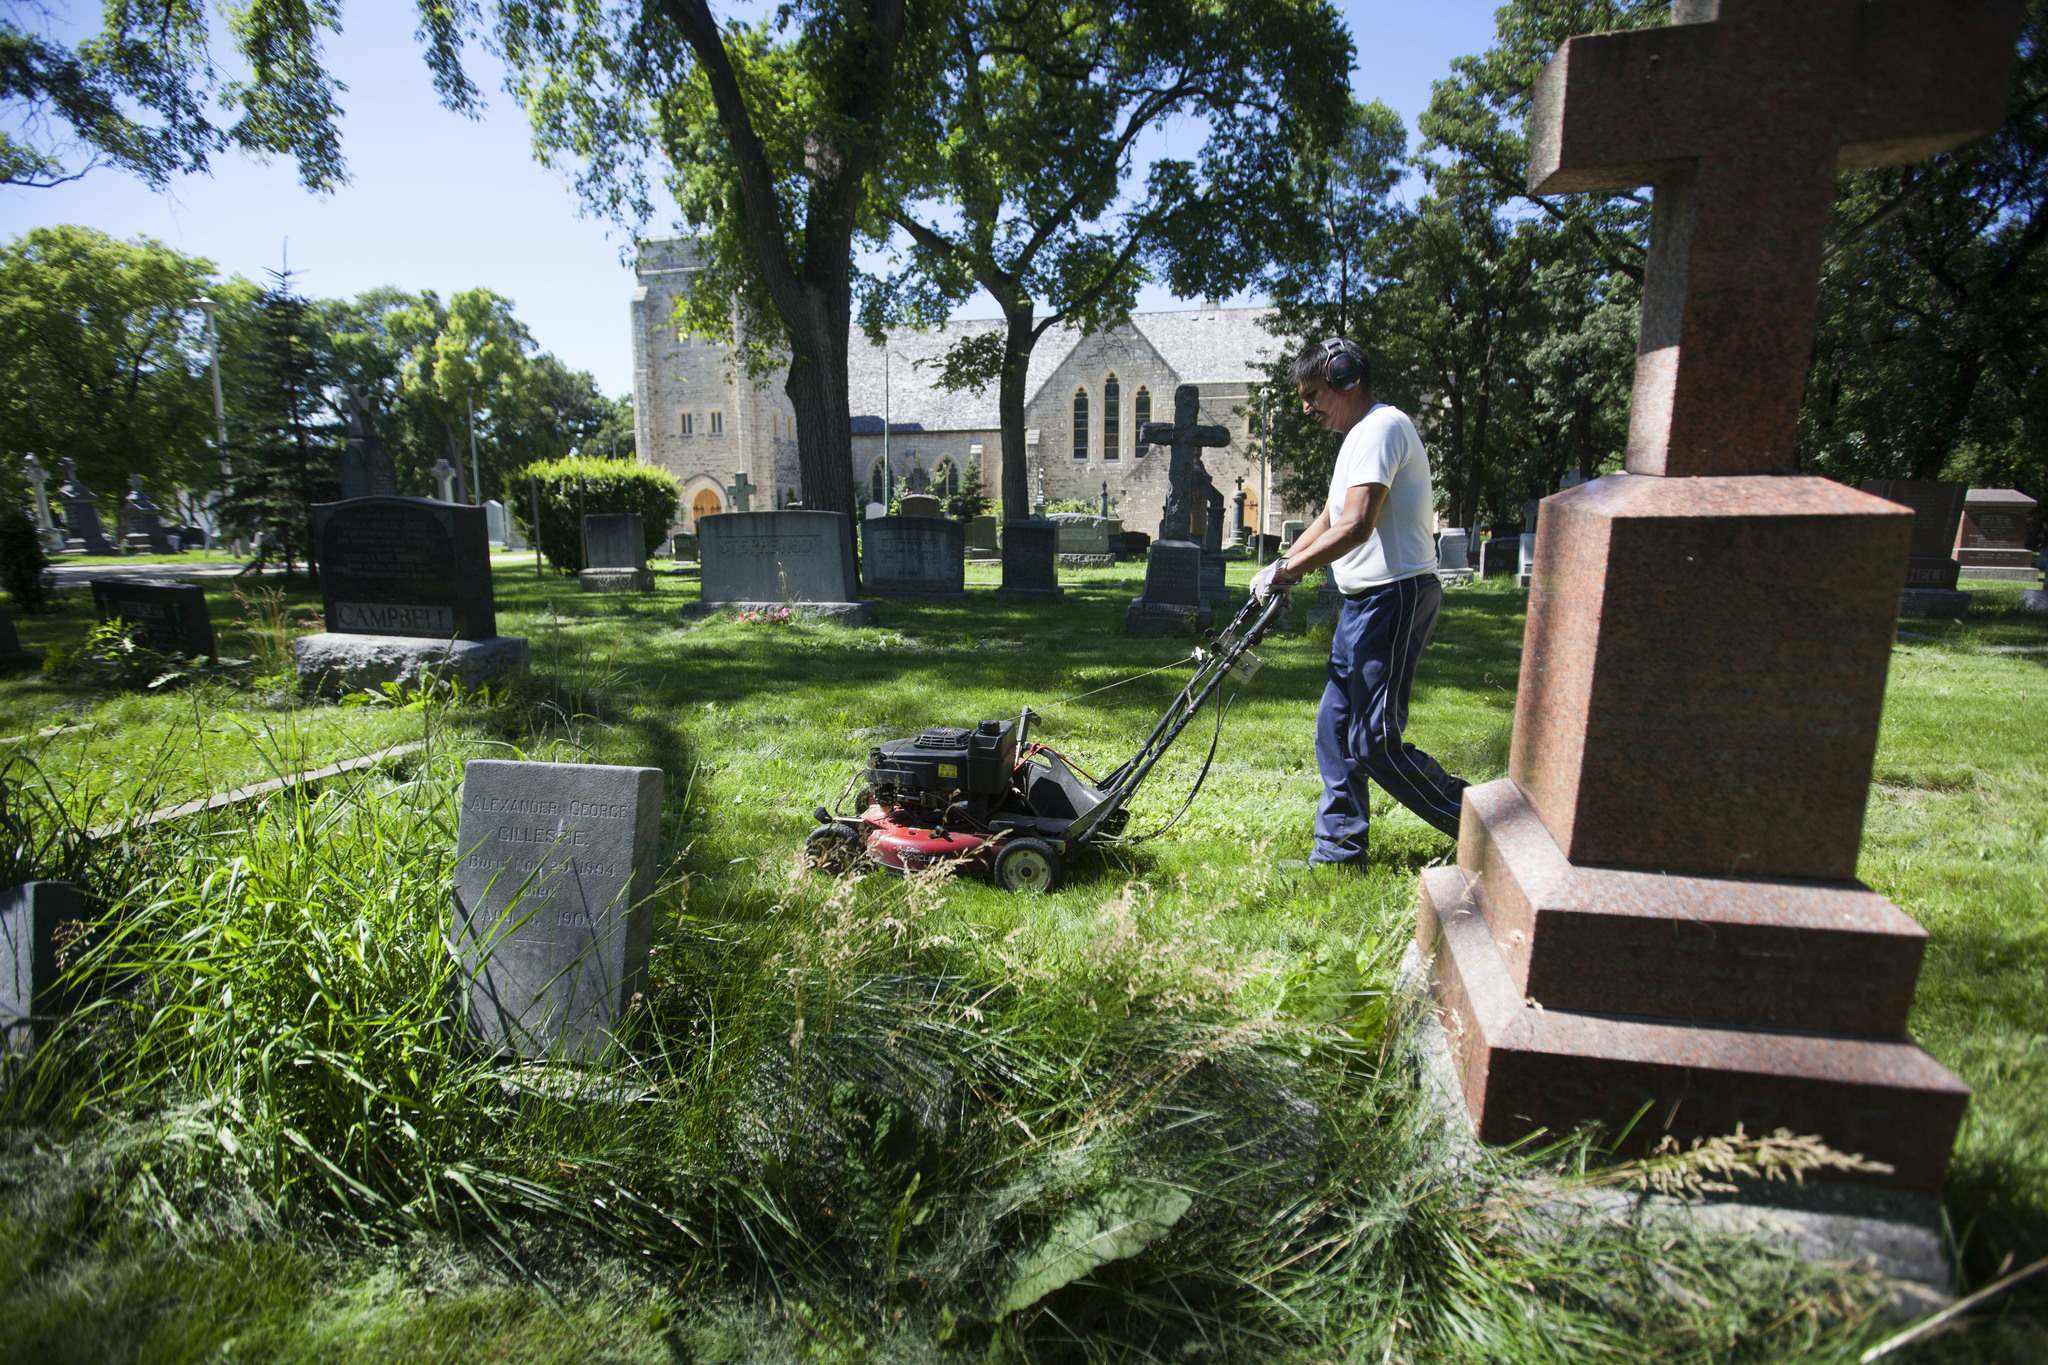 RUTH BONNEVILLE / WINNIPEG FREE PRESS</p><p>Groundskeeper Dennis Beaulieu works his way around the headstones and uneven ground to mow the lawn at the historic cemetery near St. John's Anglican Cathedral in Winnipeg.</p>